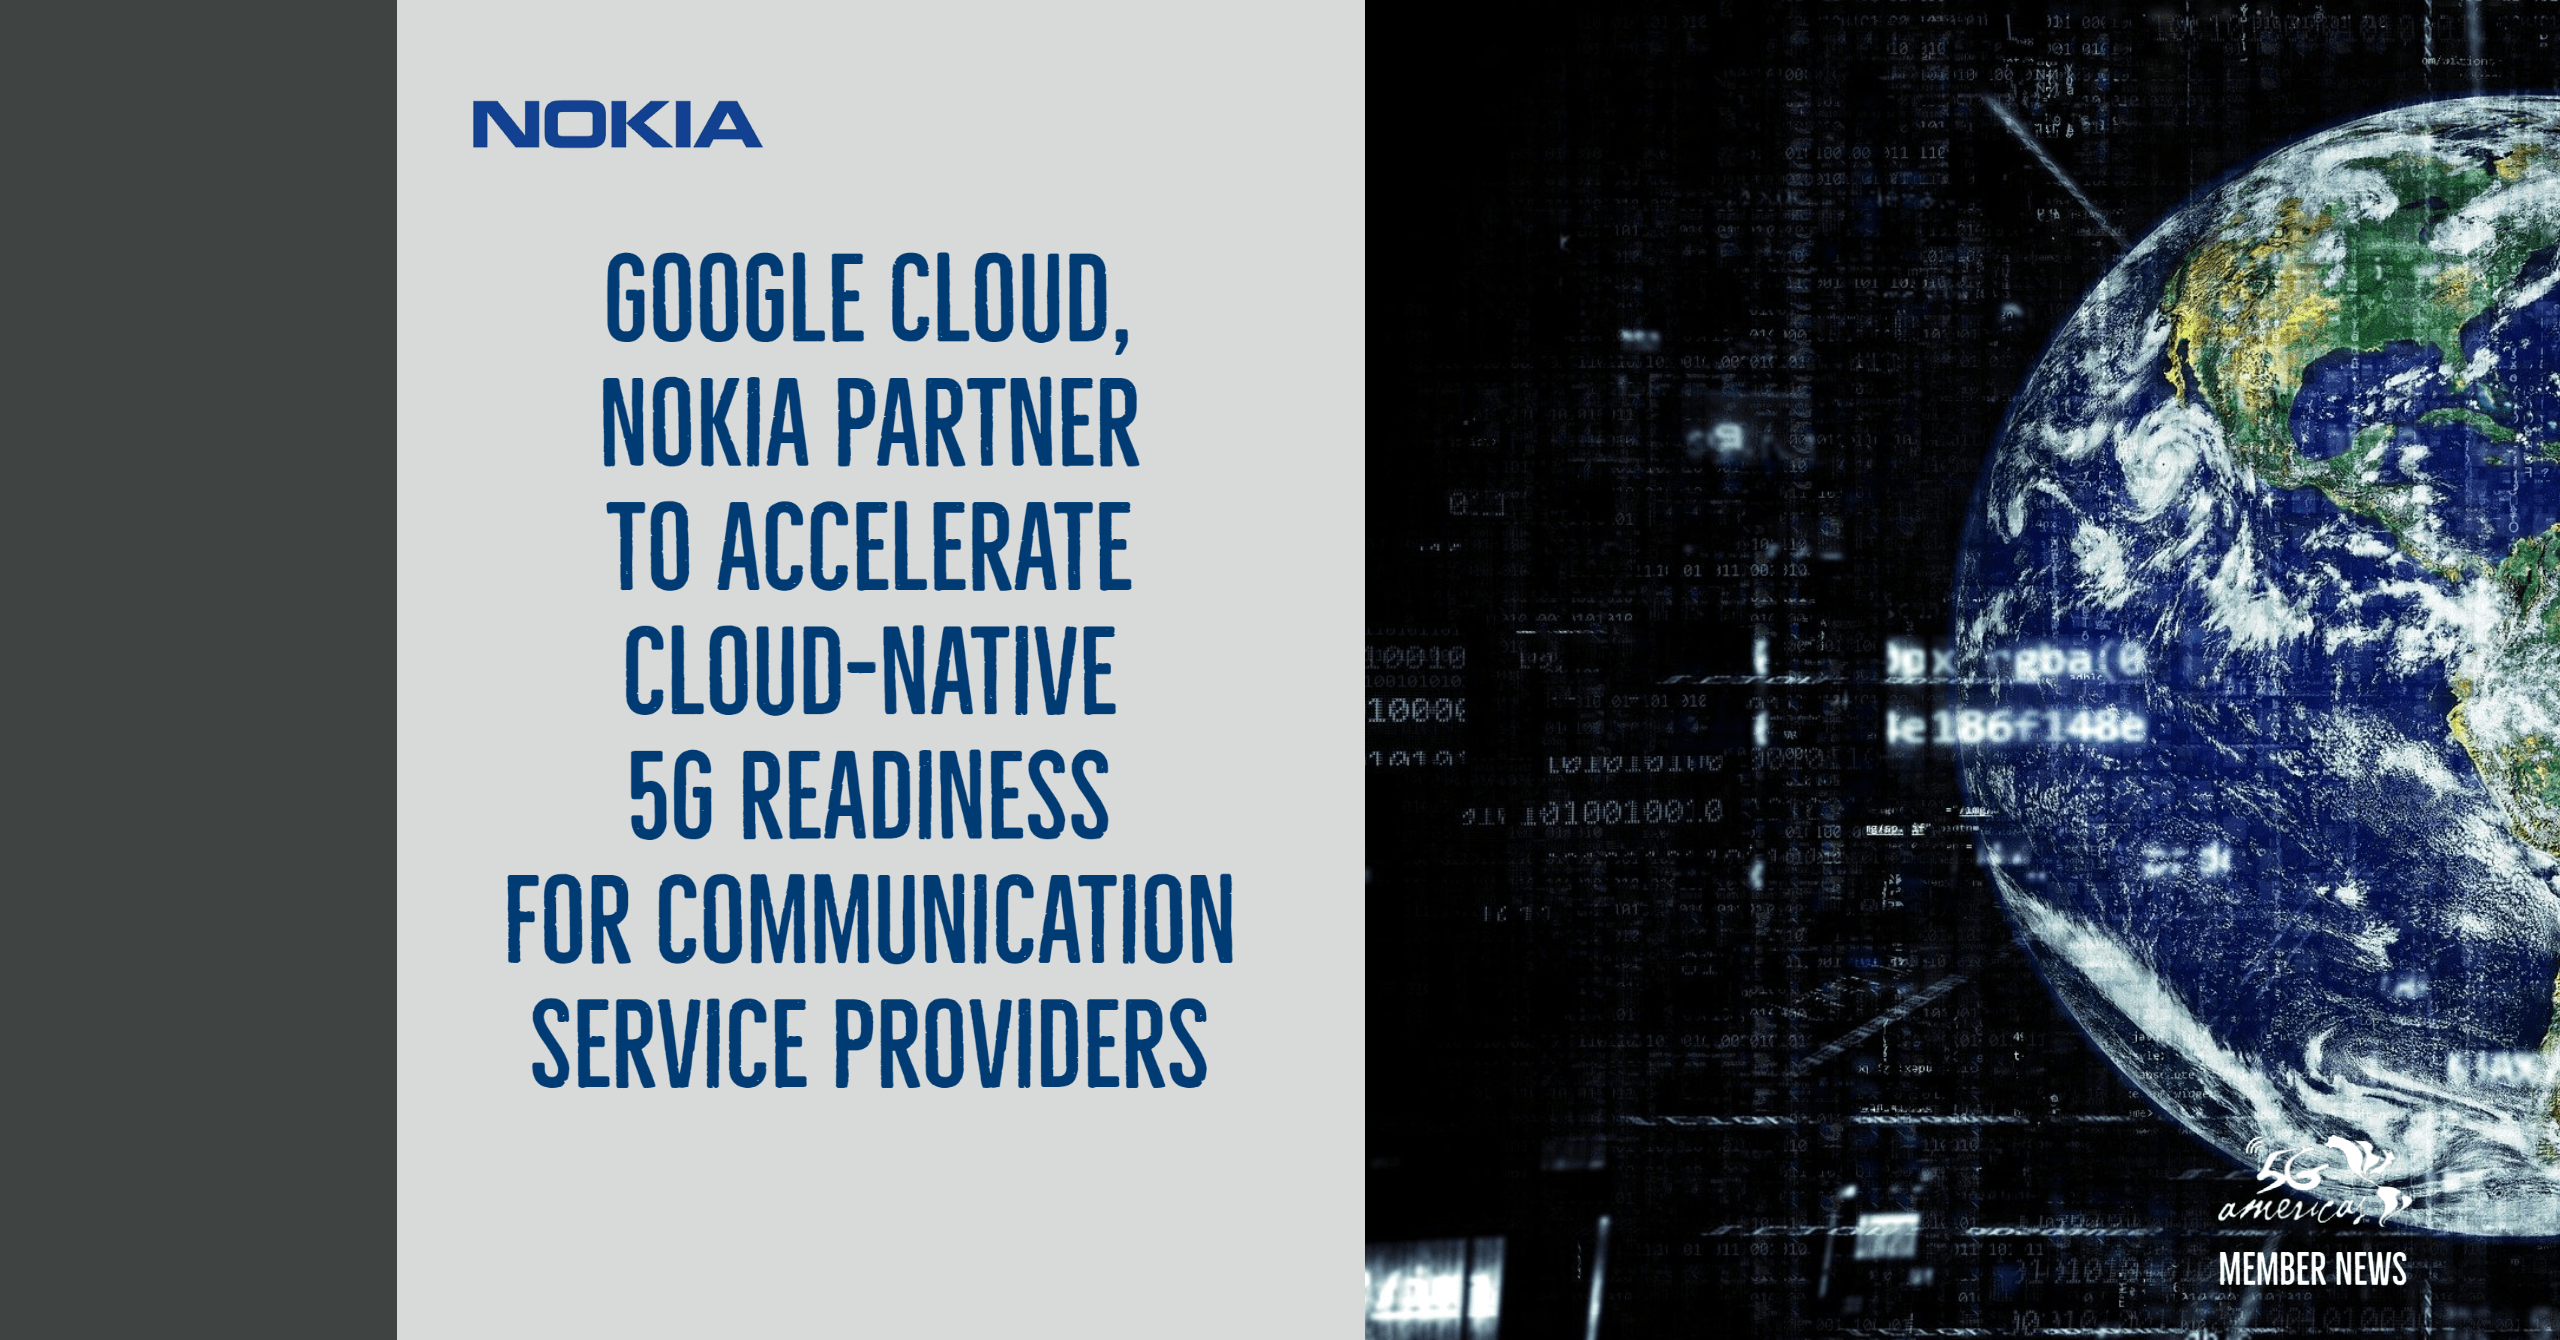 Google Cloud, Nokia partner to accelerate cloud-native 5G readiness for communication service providers 6